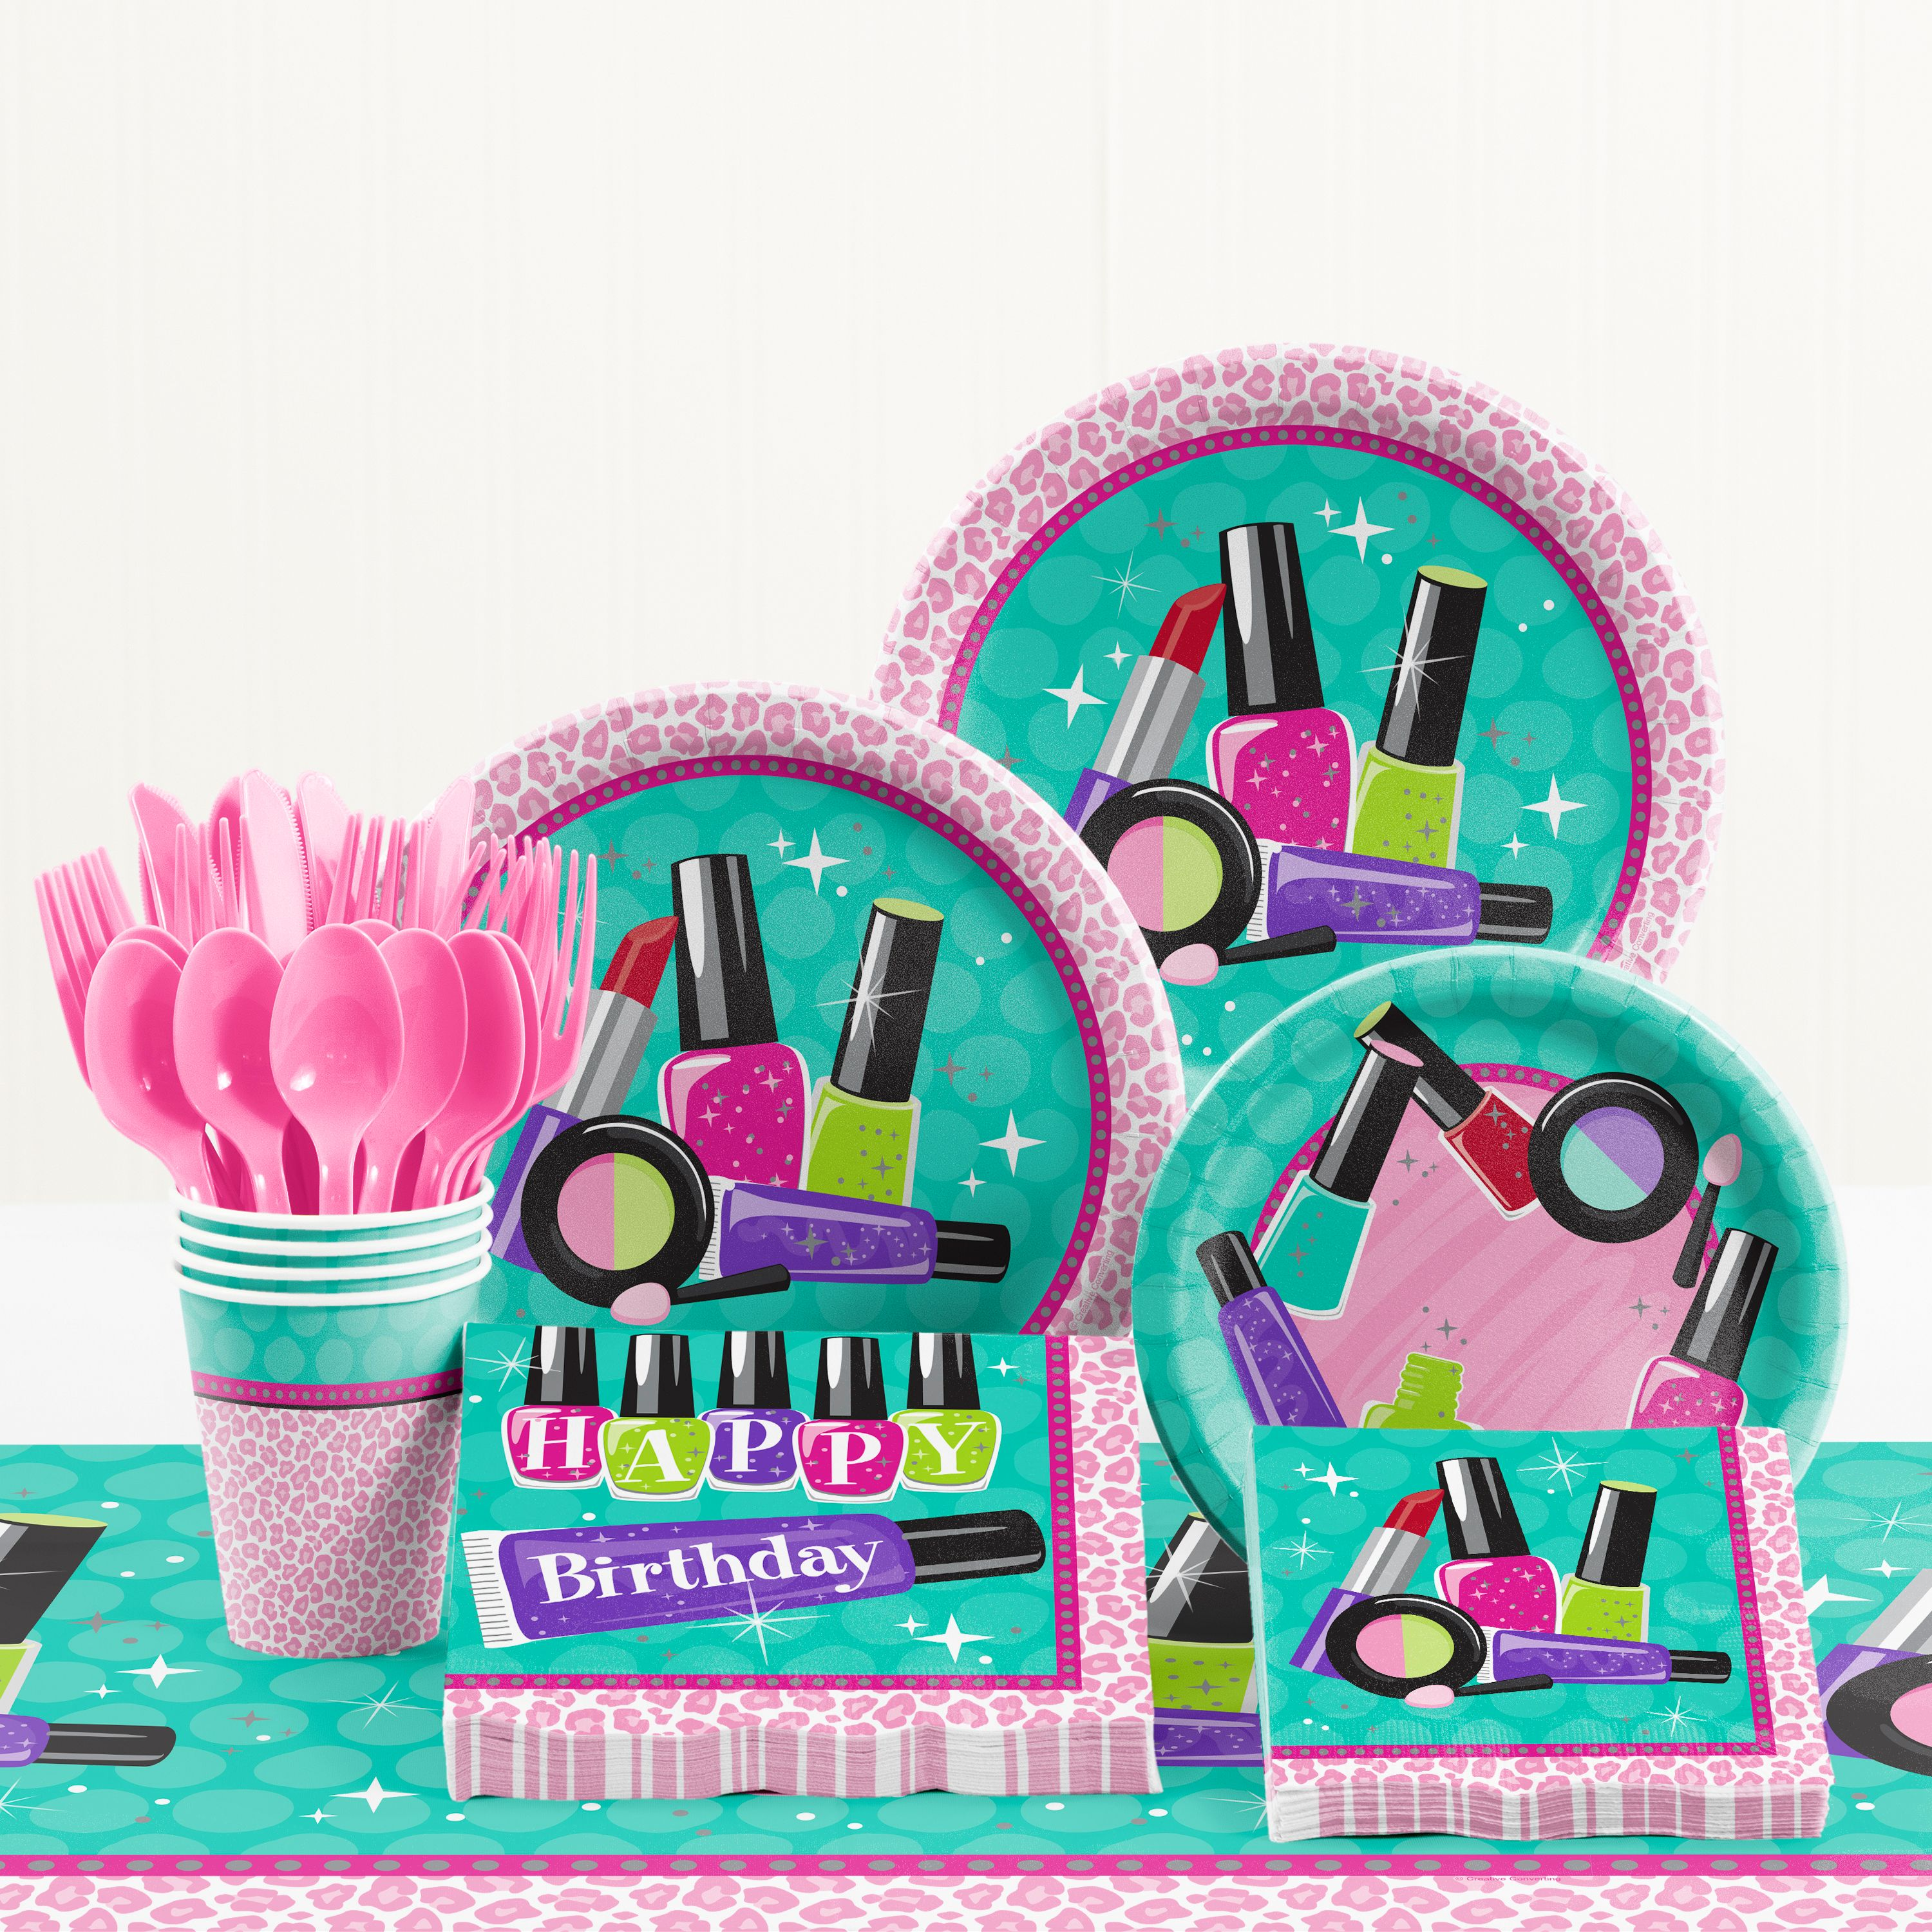 Sparkle Spa Birthday Party Supplies Kit